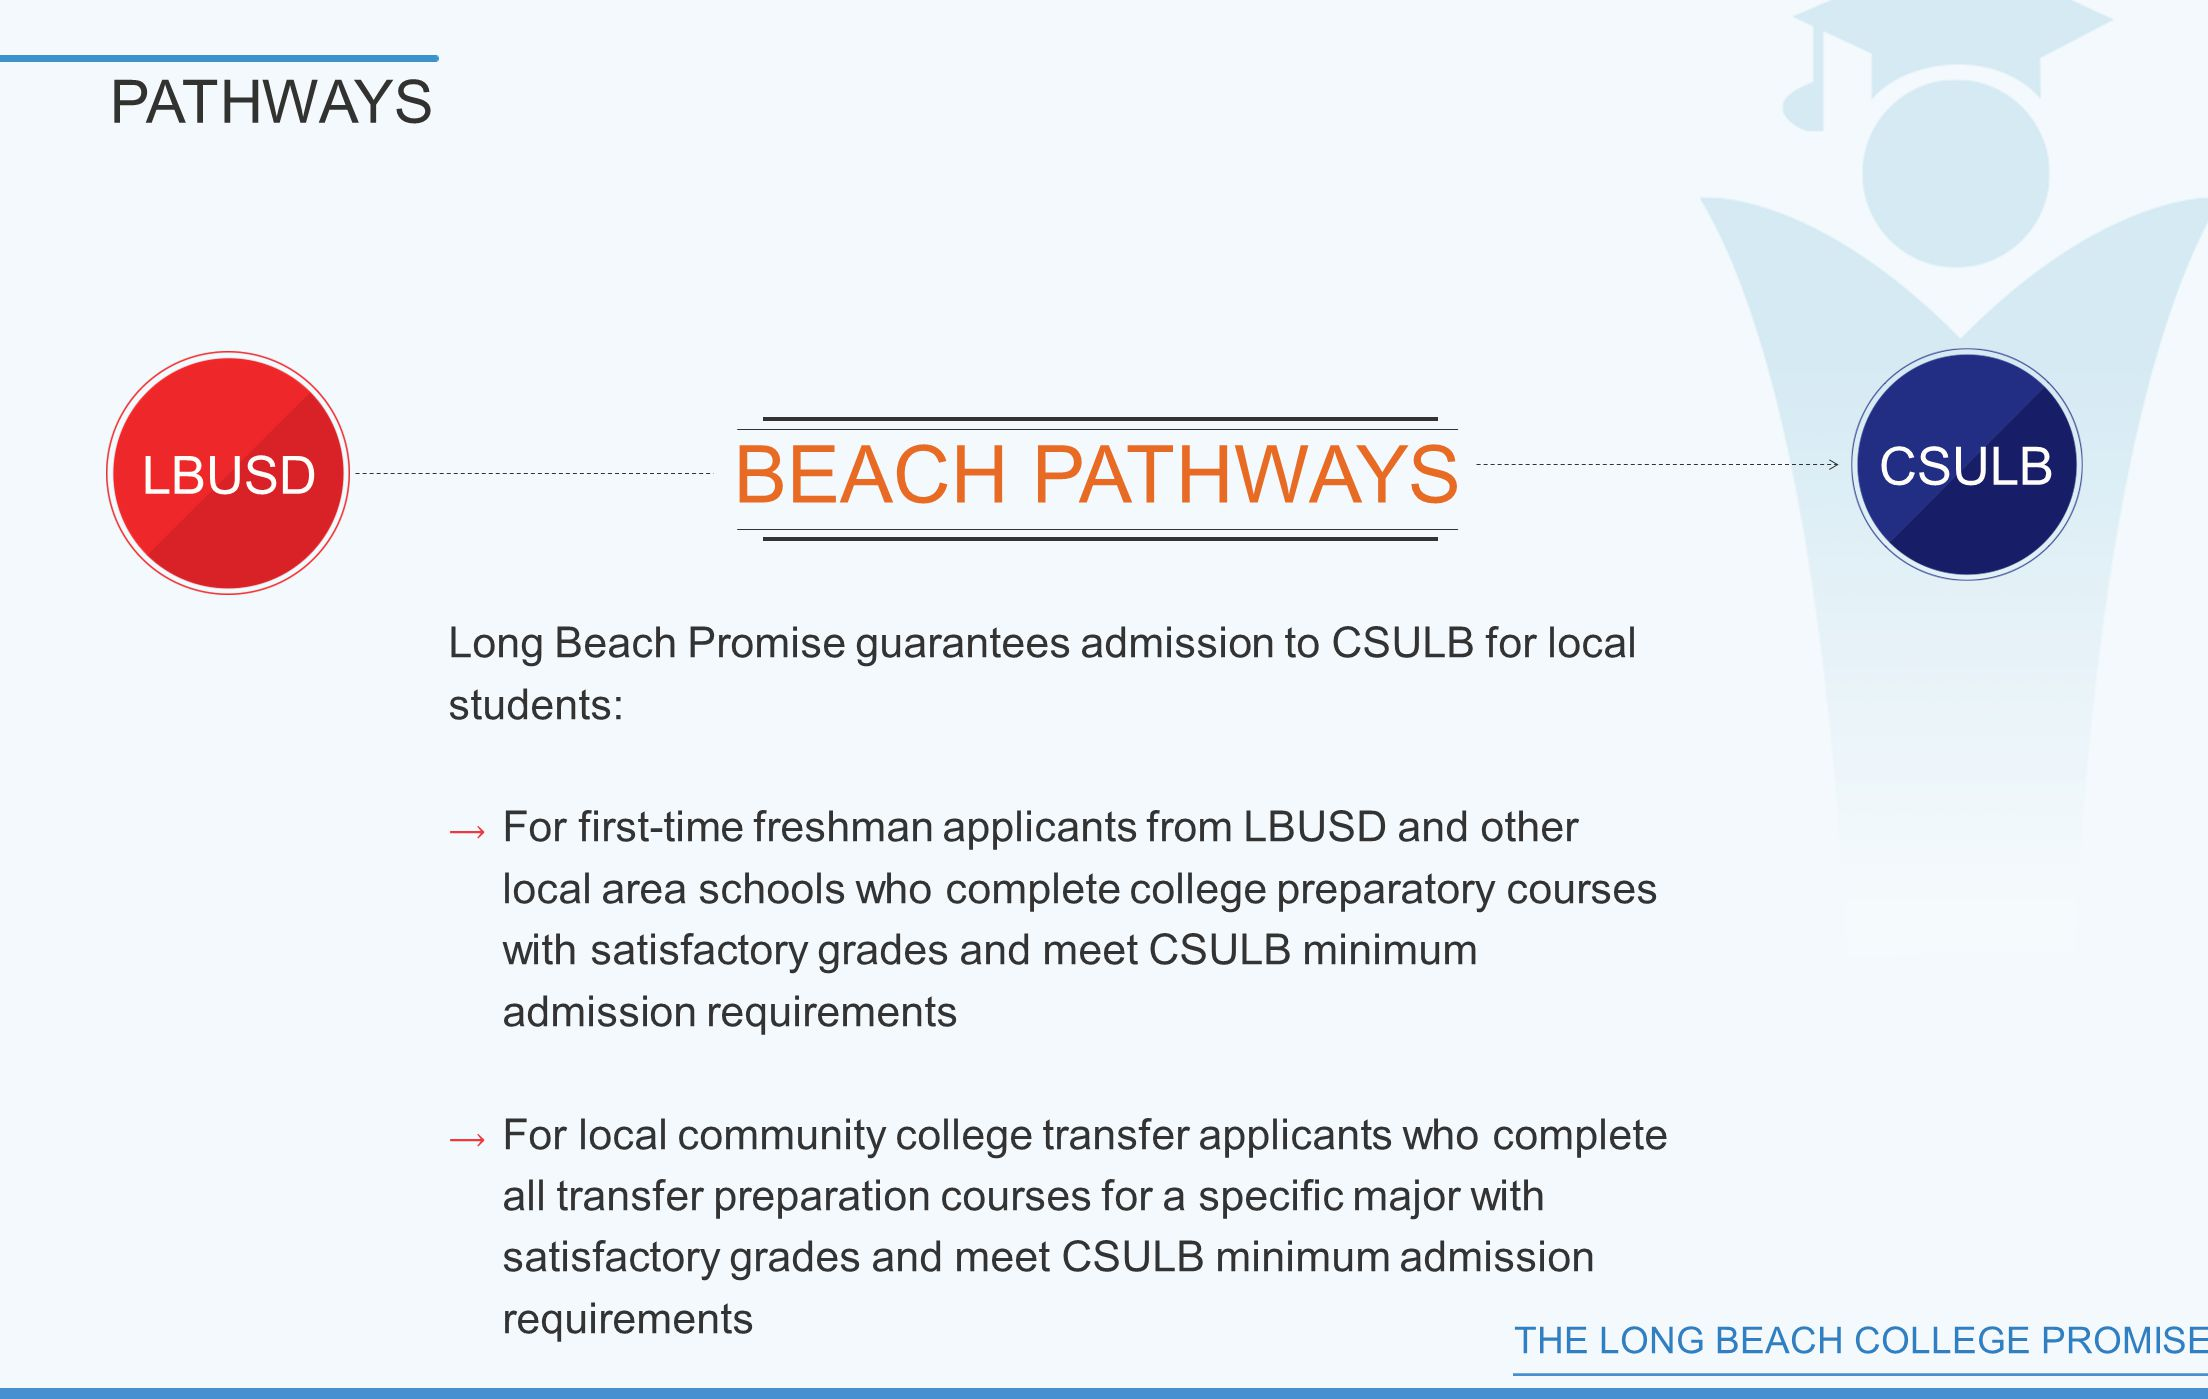 THE LONG BEACH COLLEGE PROMISE PATHWAYS Long Beach Promise guarantees admission to CSULB for local students:  For first-time freshman applicants from LBUSD and other local area schools who complete college preparatory courses with satisfactory grades and meet CSULB minimum admission requirements  For local community college transfer applicants who complete all transfer preparation courses for a specific major with satisfactory grades and meet CSULB minimum admission requirements LBUSD CSULB BEACH PATHWAYS